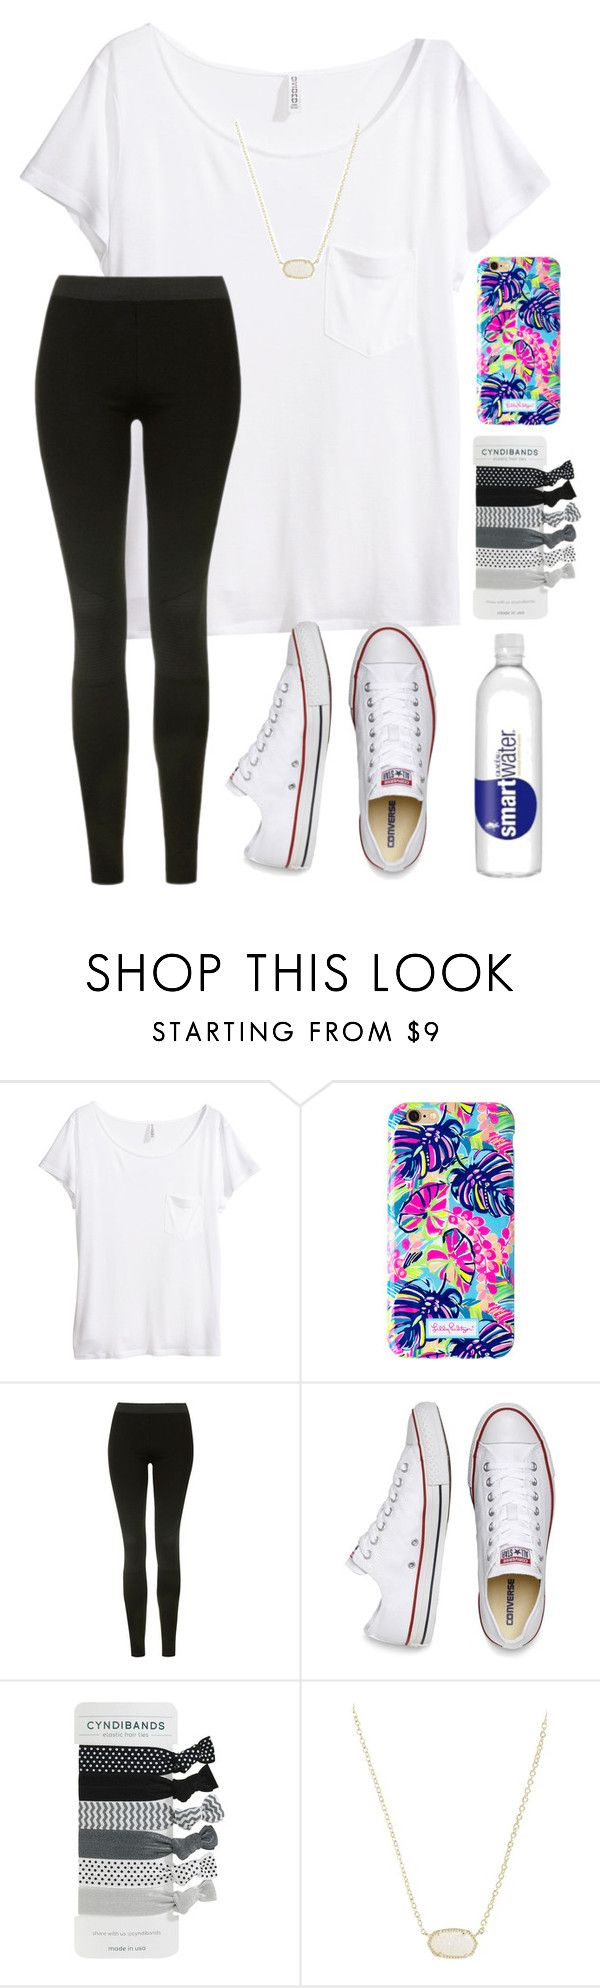 """""""2- second day of school"""" by nc-preppy-living ❤ liked on Polyvore featuring H&M, Lilly Pulitzer, Topshop, Converse, Kendra Scott and matticontest2"""